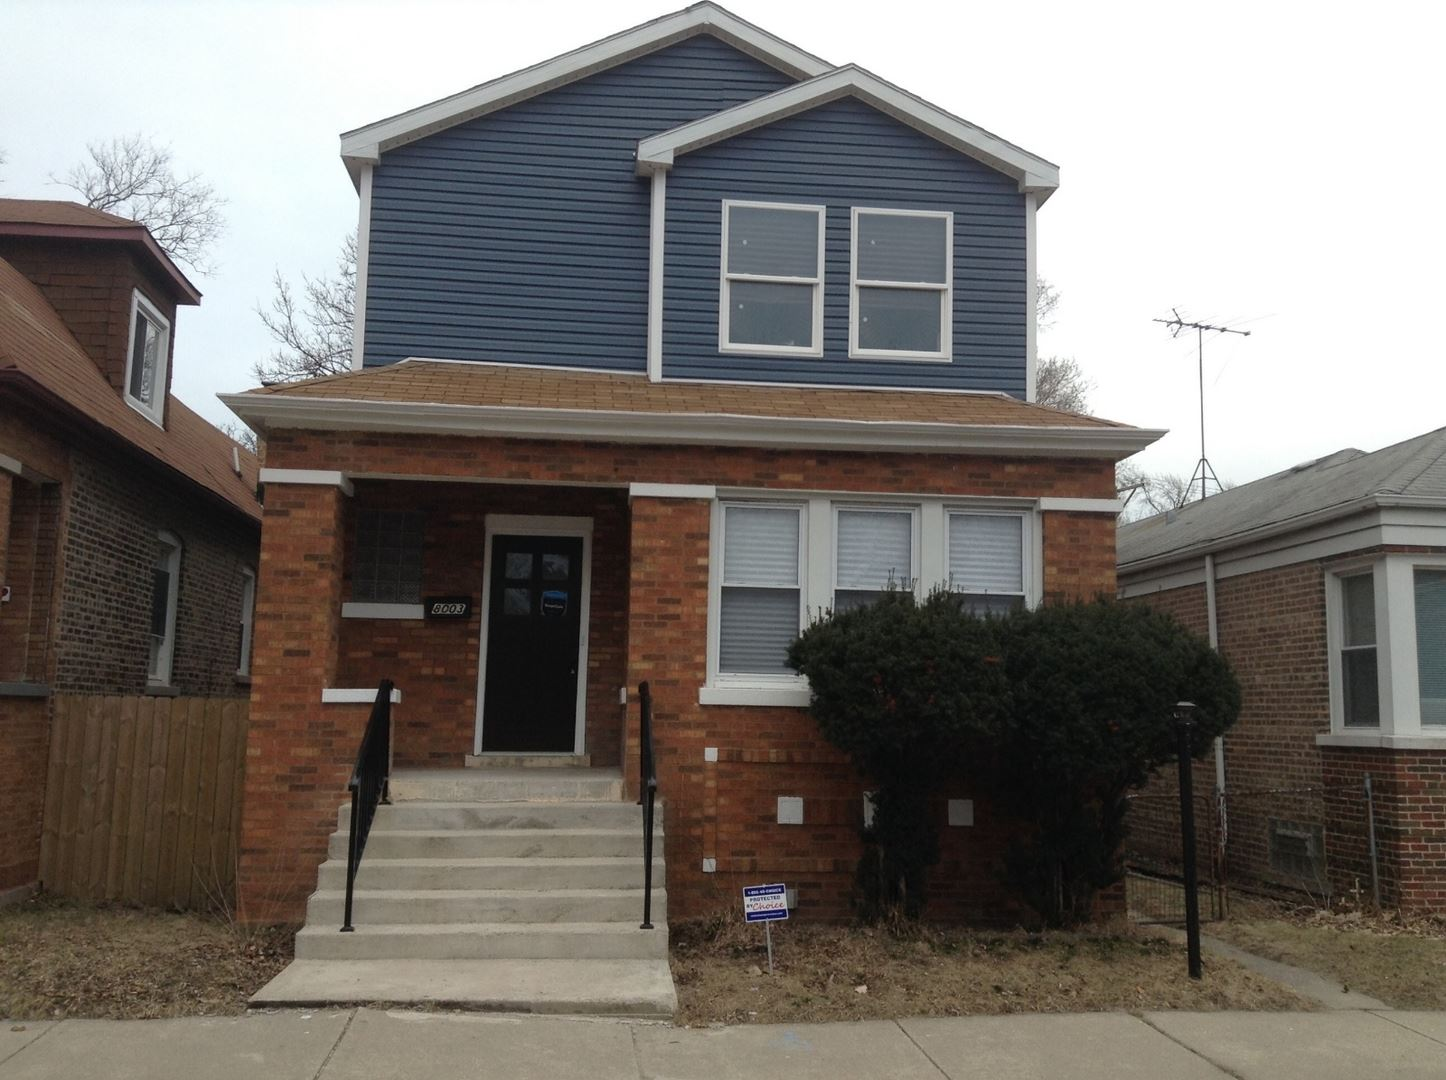 8003 S Dorchester Avenue, Chicago, IL 60619 - #: 10646214